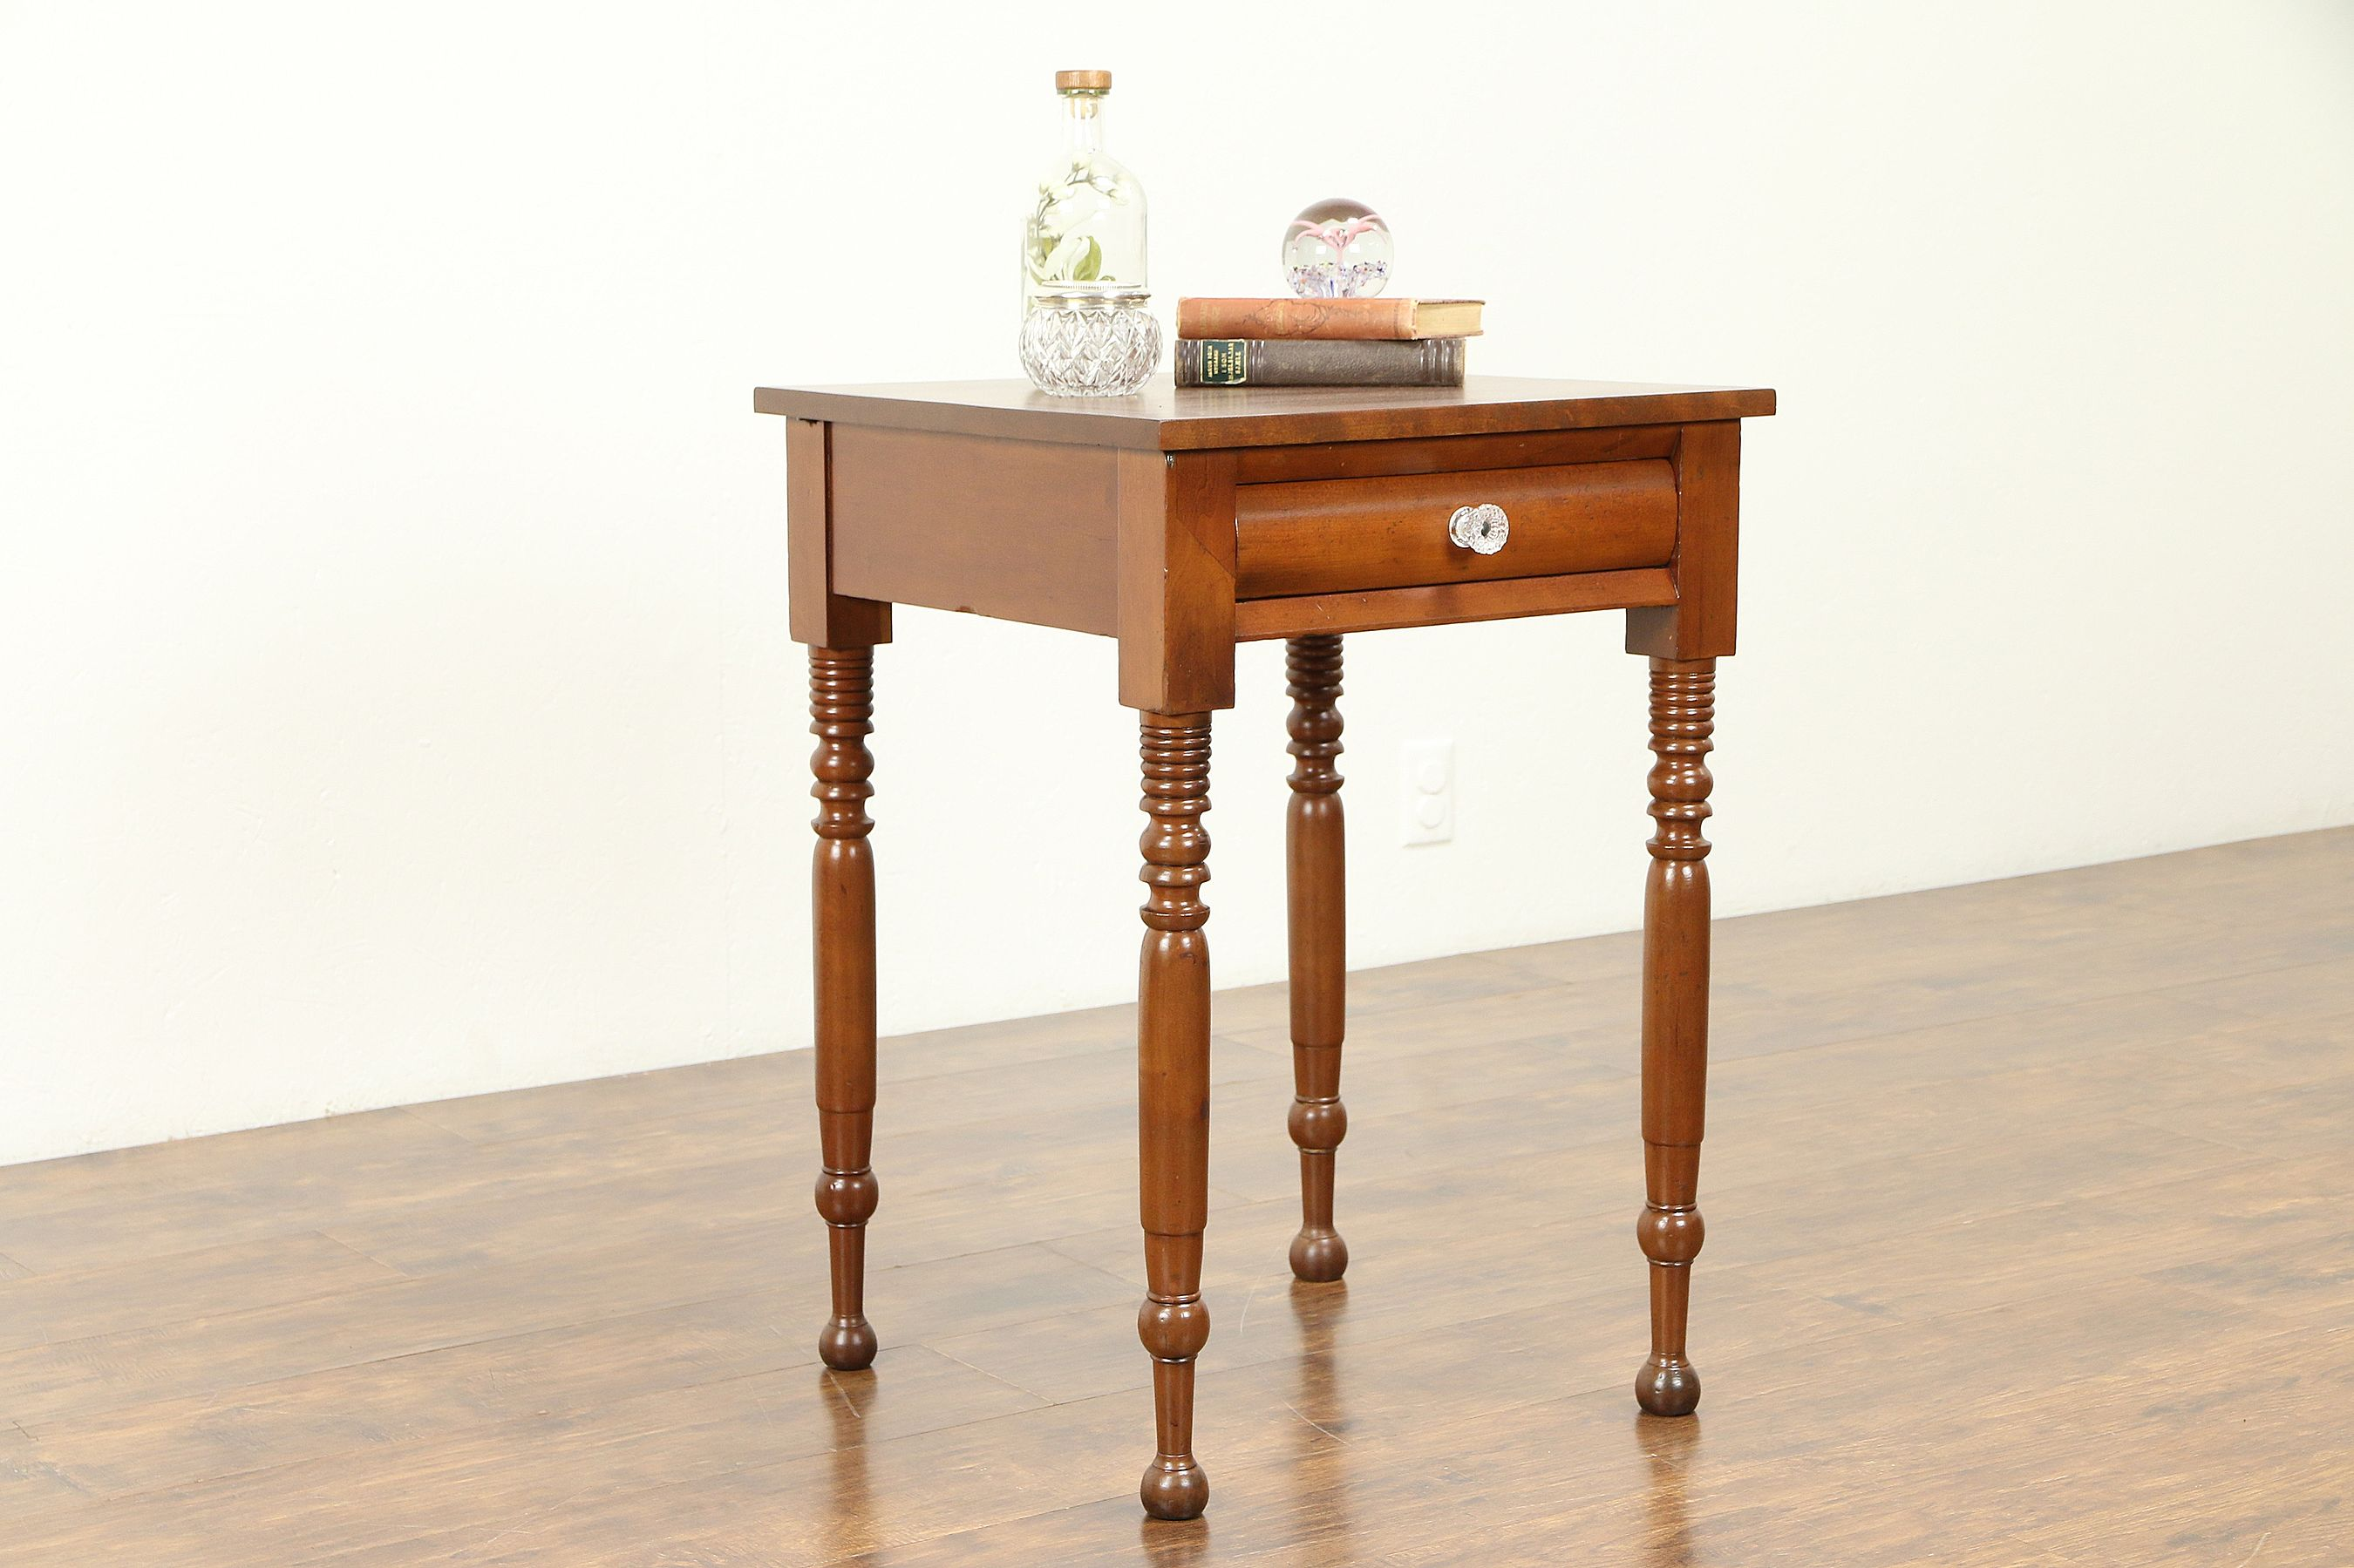 cherry antique nightstand end table glass knob front tables broyhill throw large wire dog kennel painted furniture ideas magnolia market bedding ethan allen country crossings